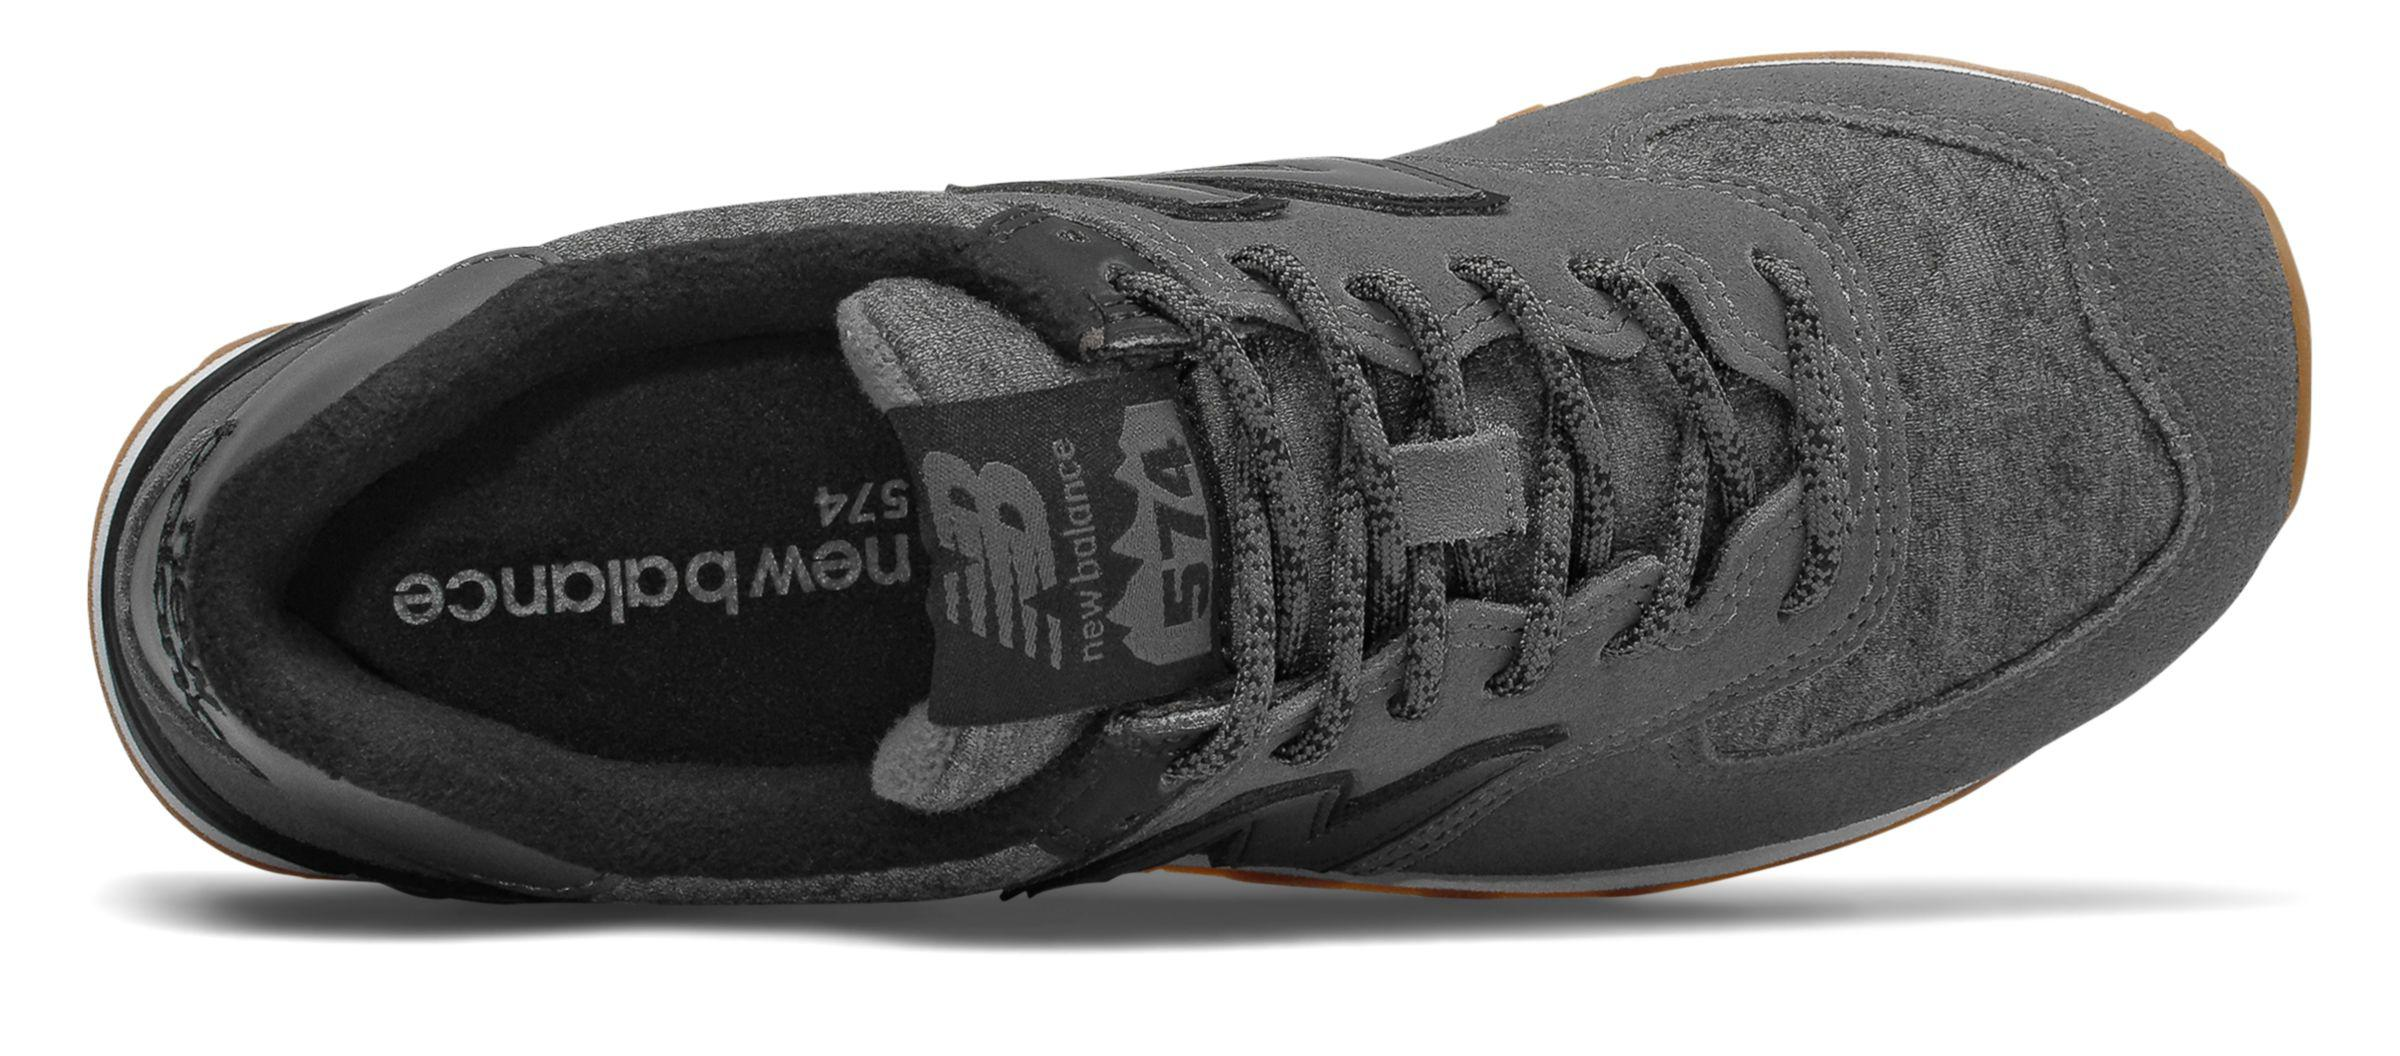 lowest price 00968 2b29a New Balance Black 574 Winter Quilt